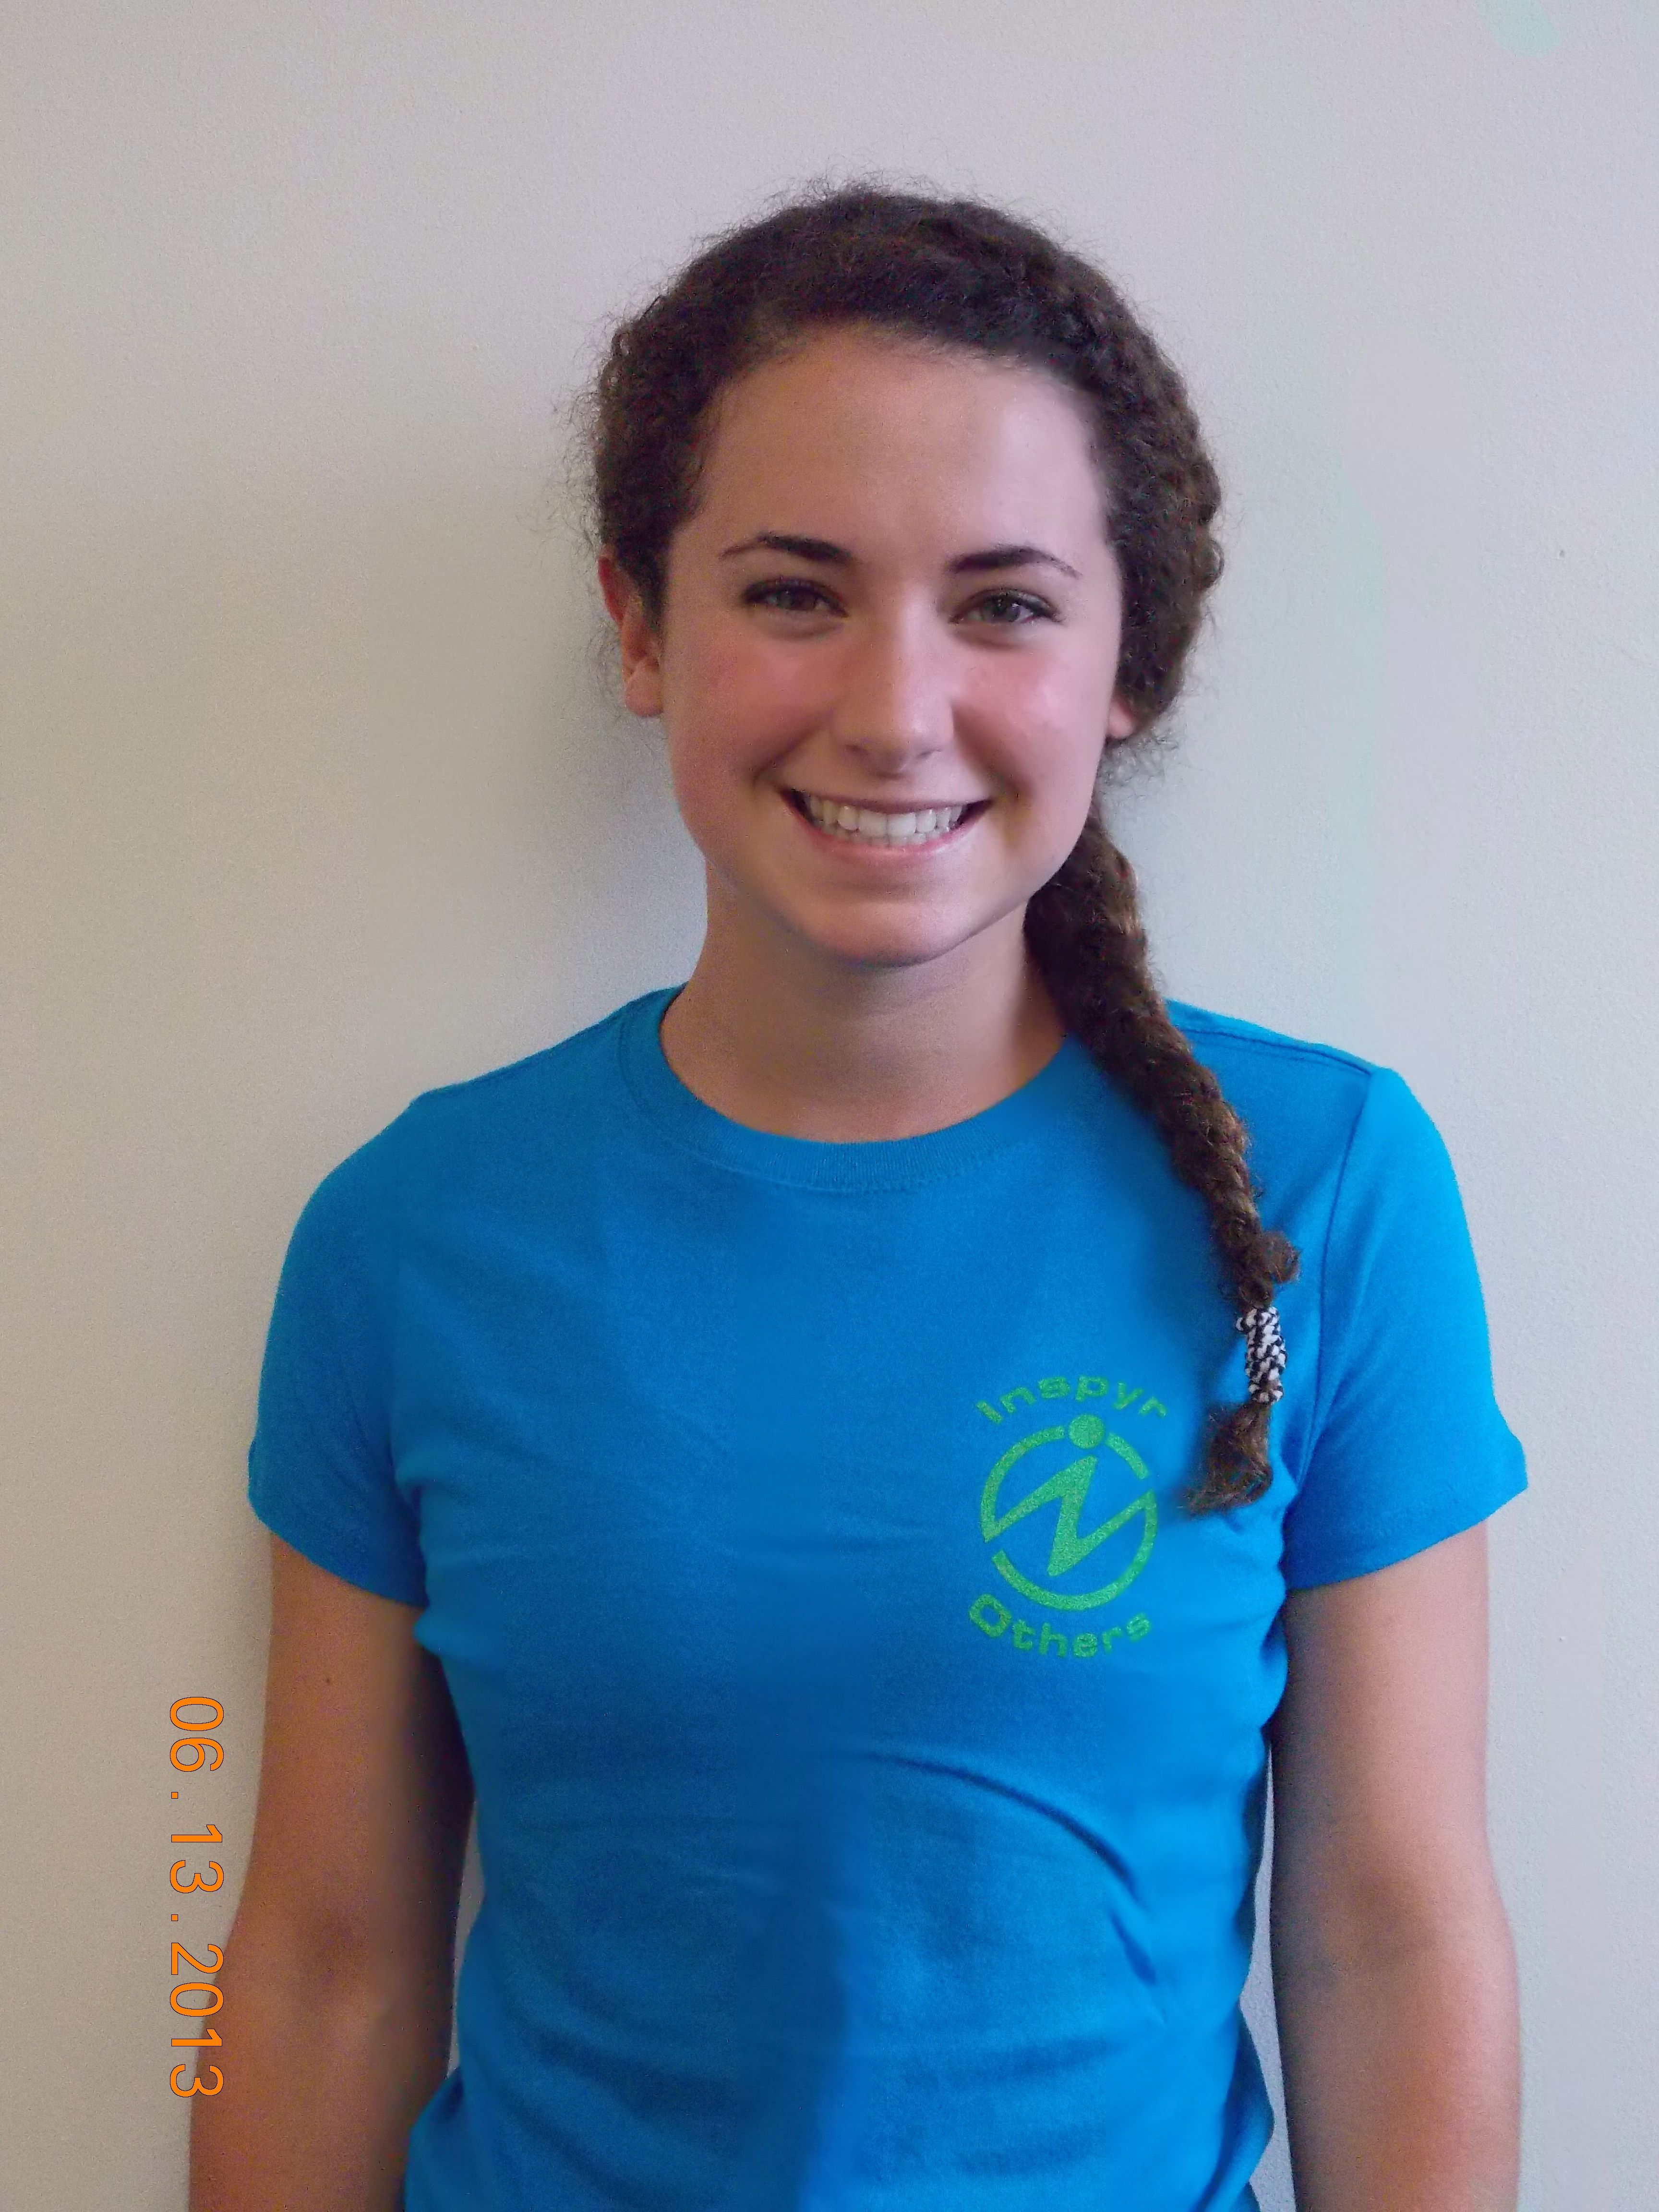 Megan is wearing her ladies 100% combed cotton t-shirt from Inspyr Apparel. Soft as silk with a positive message.